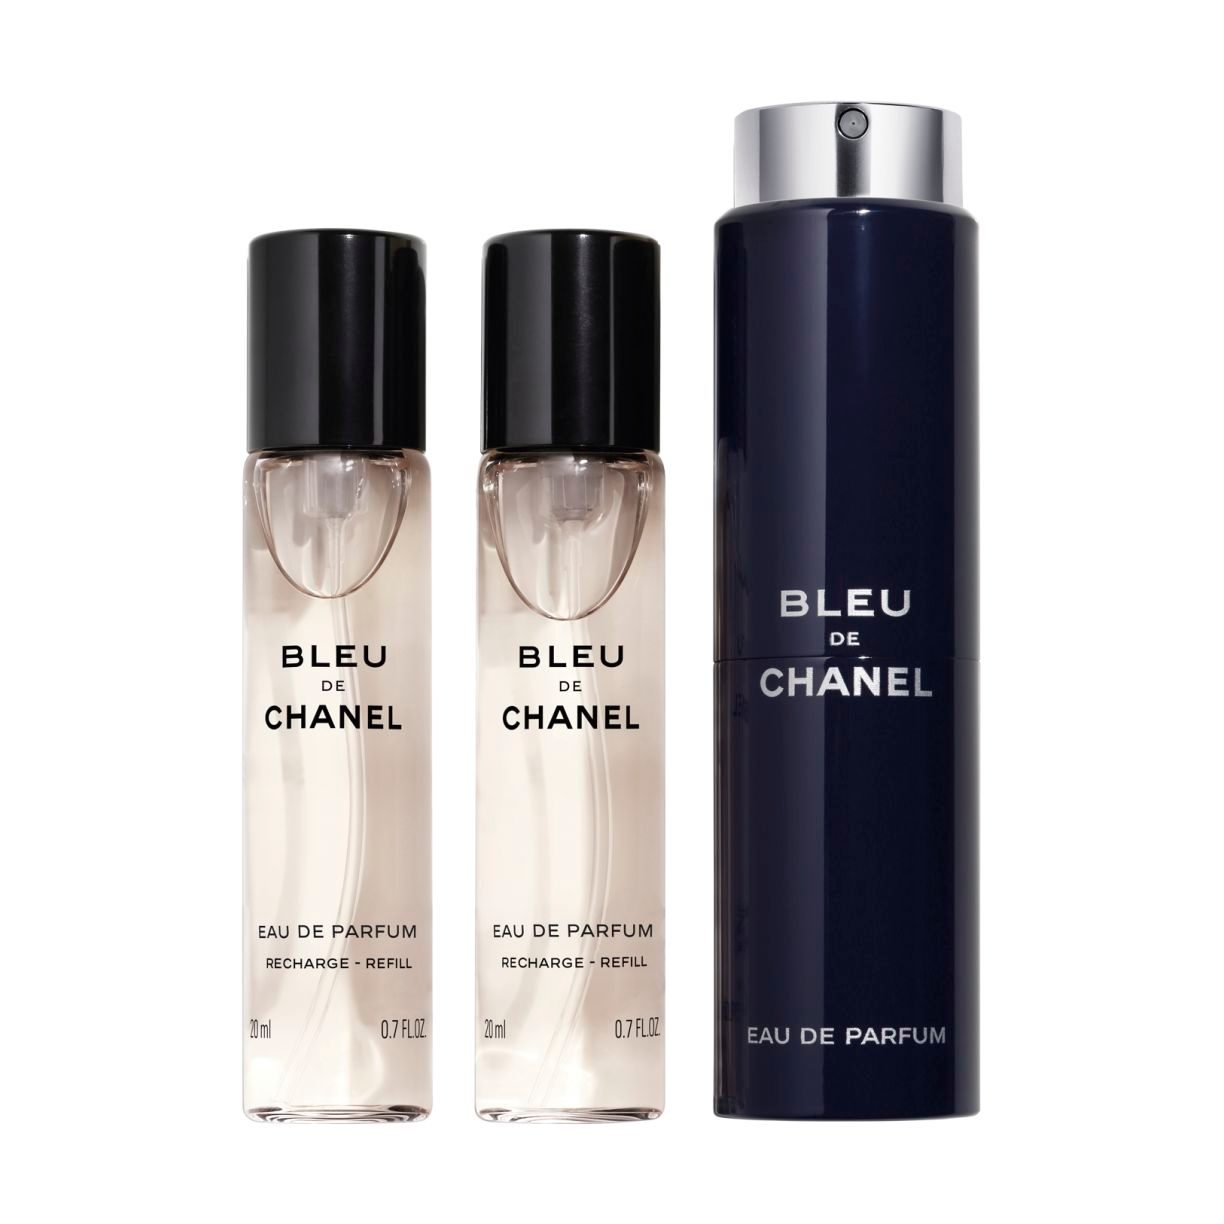 BLEU DE CHANEL EAU DE PARFUM REFILLABLE TRAVEL SPRAY